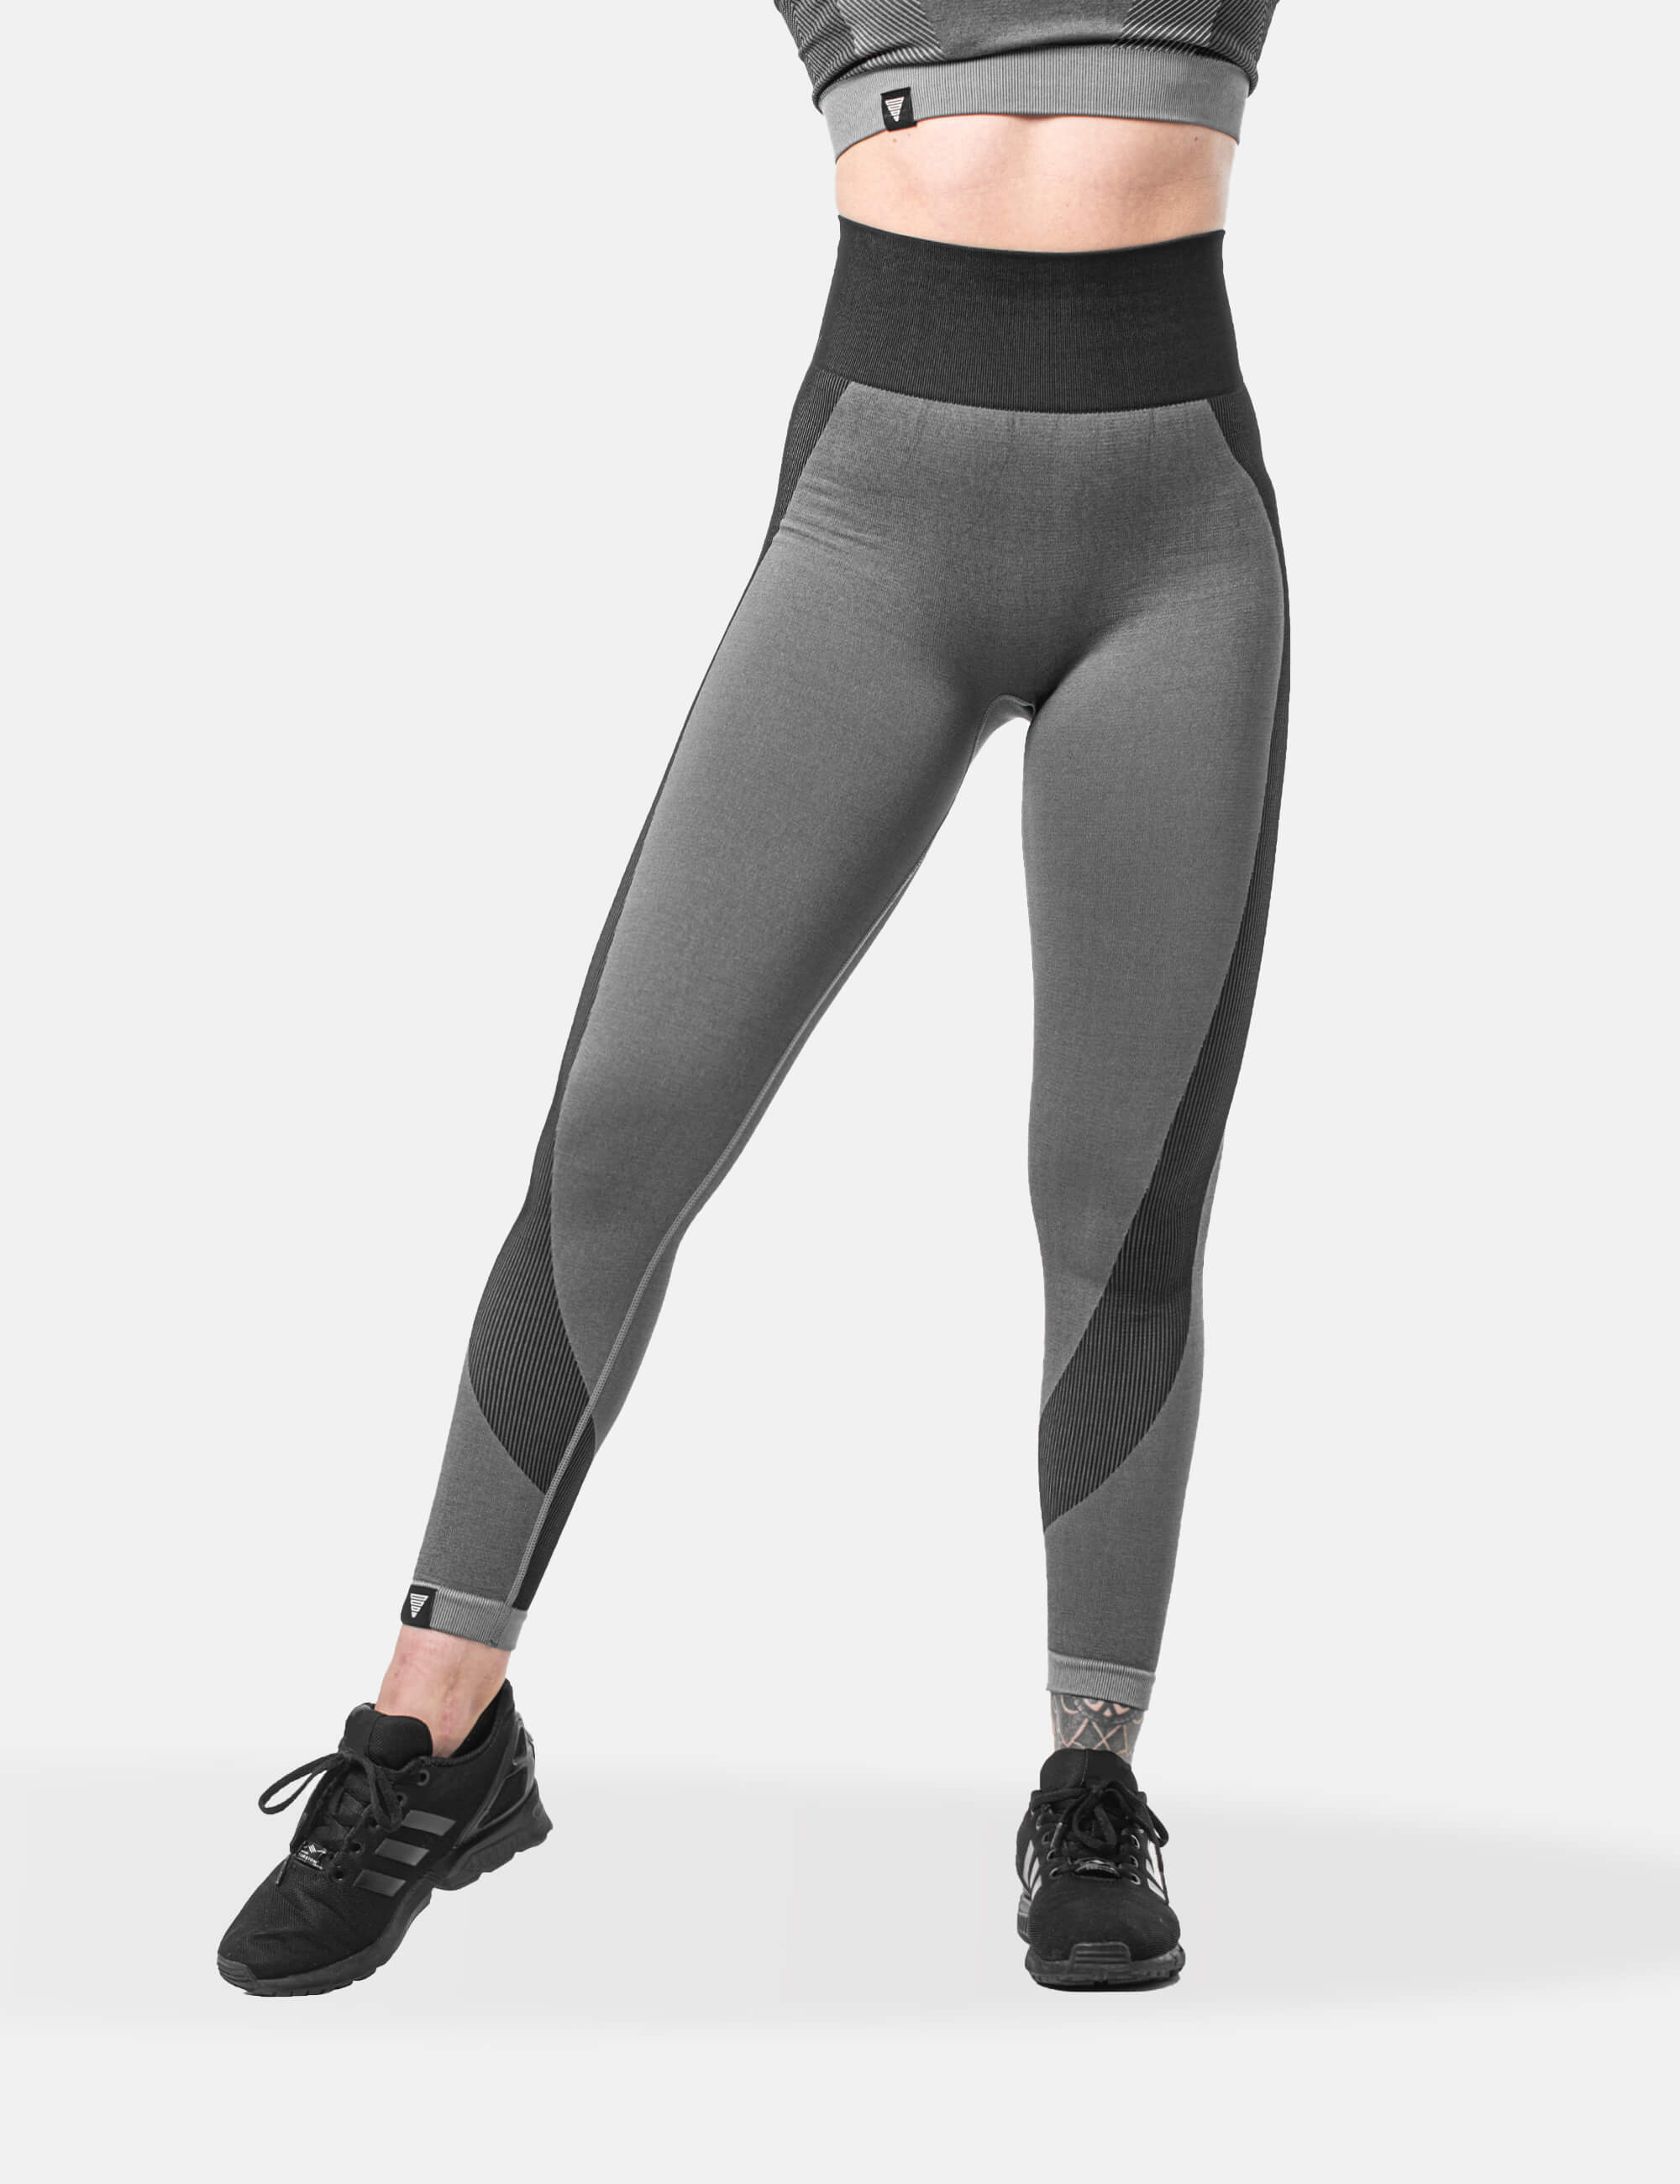 Grey performance legging for woman. Also wearing the performance crop top.